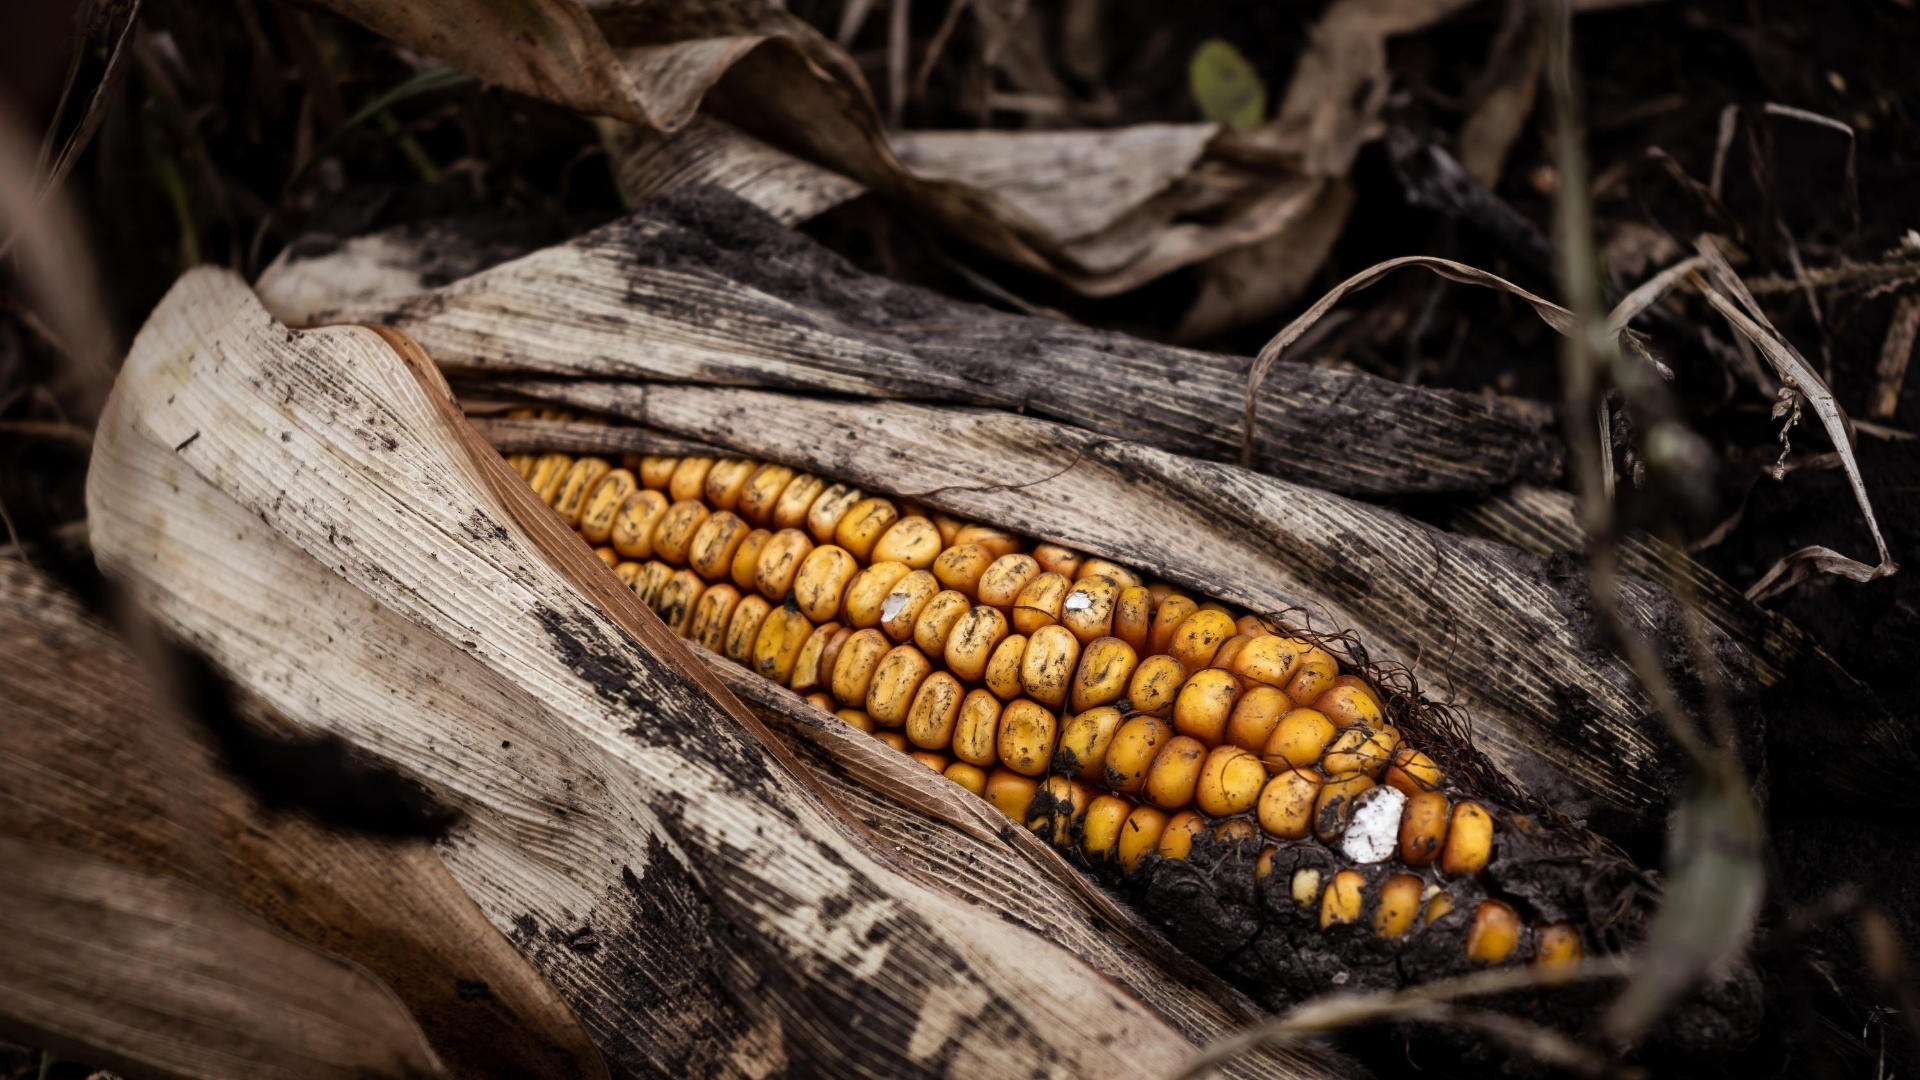 Corn lying in the dark dust - how do I help a loved one involved in a cult?